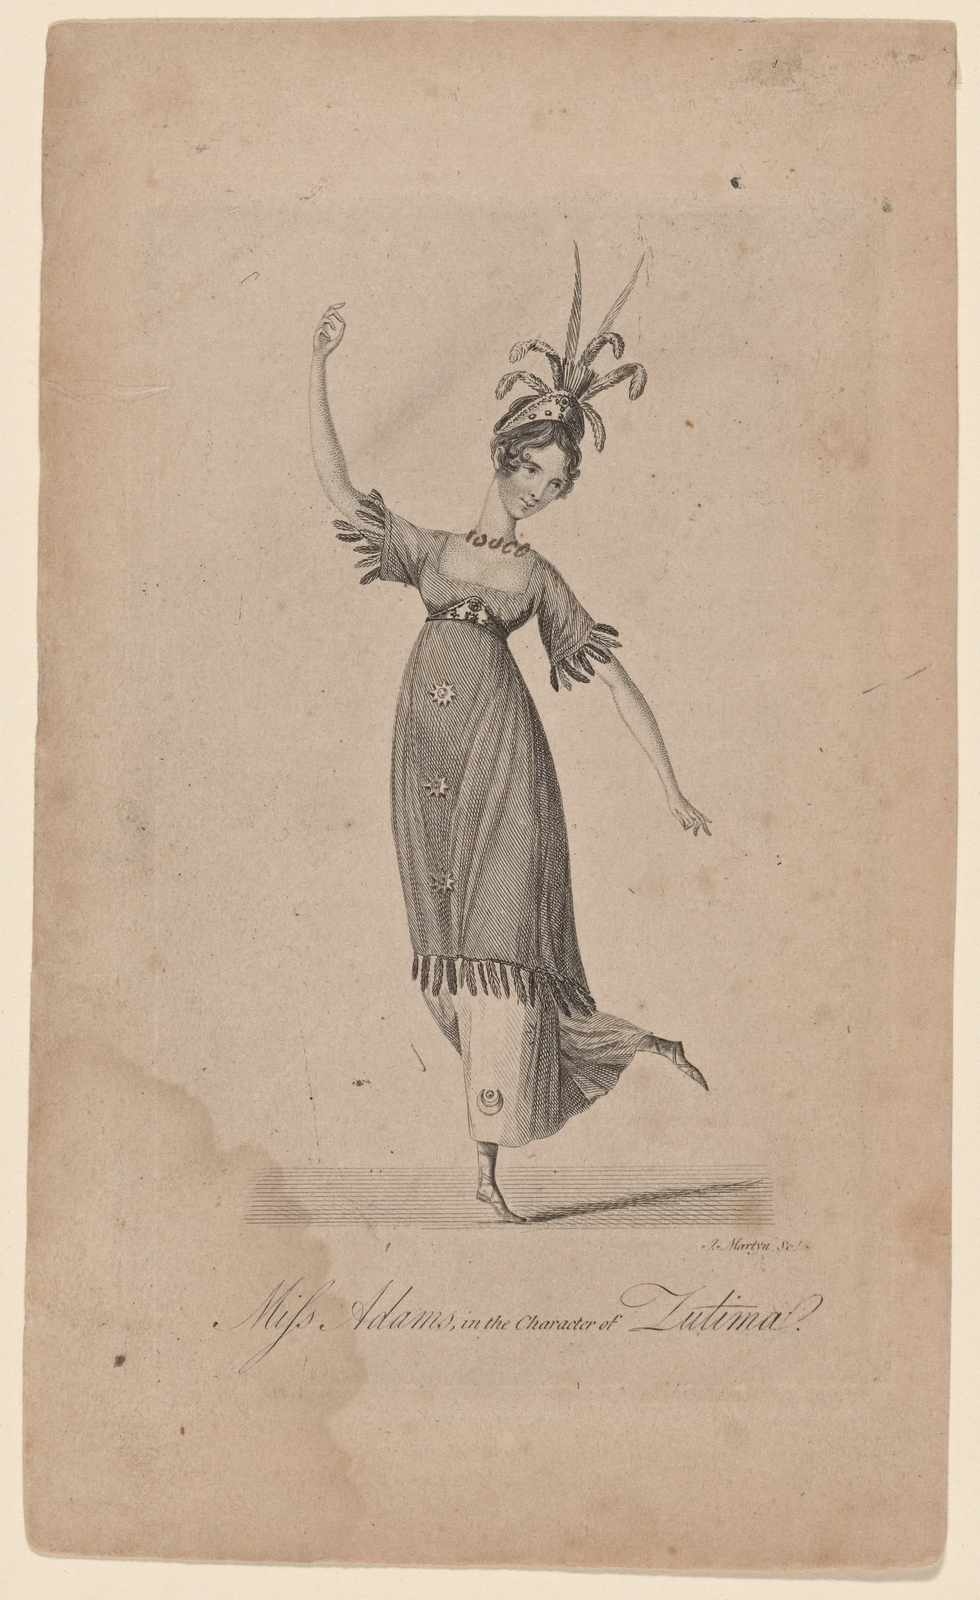 Miss Adams in the character of Zulima in the grand ballet dance of Zelico.